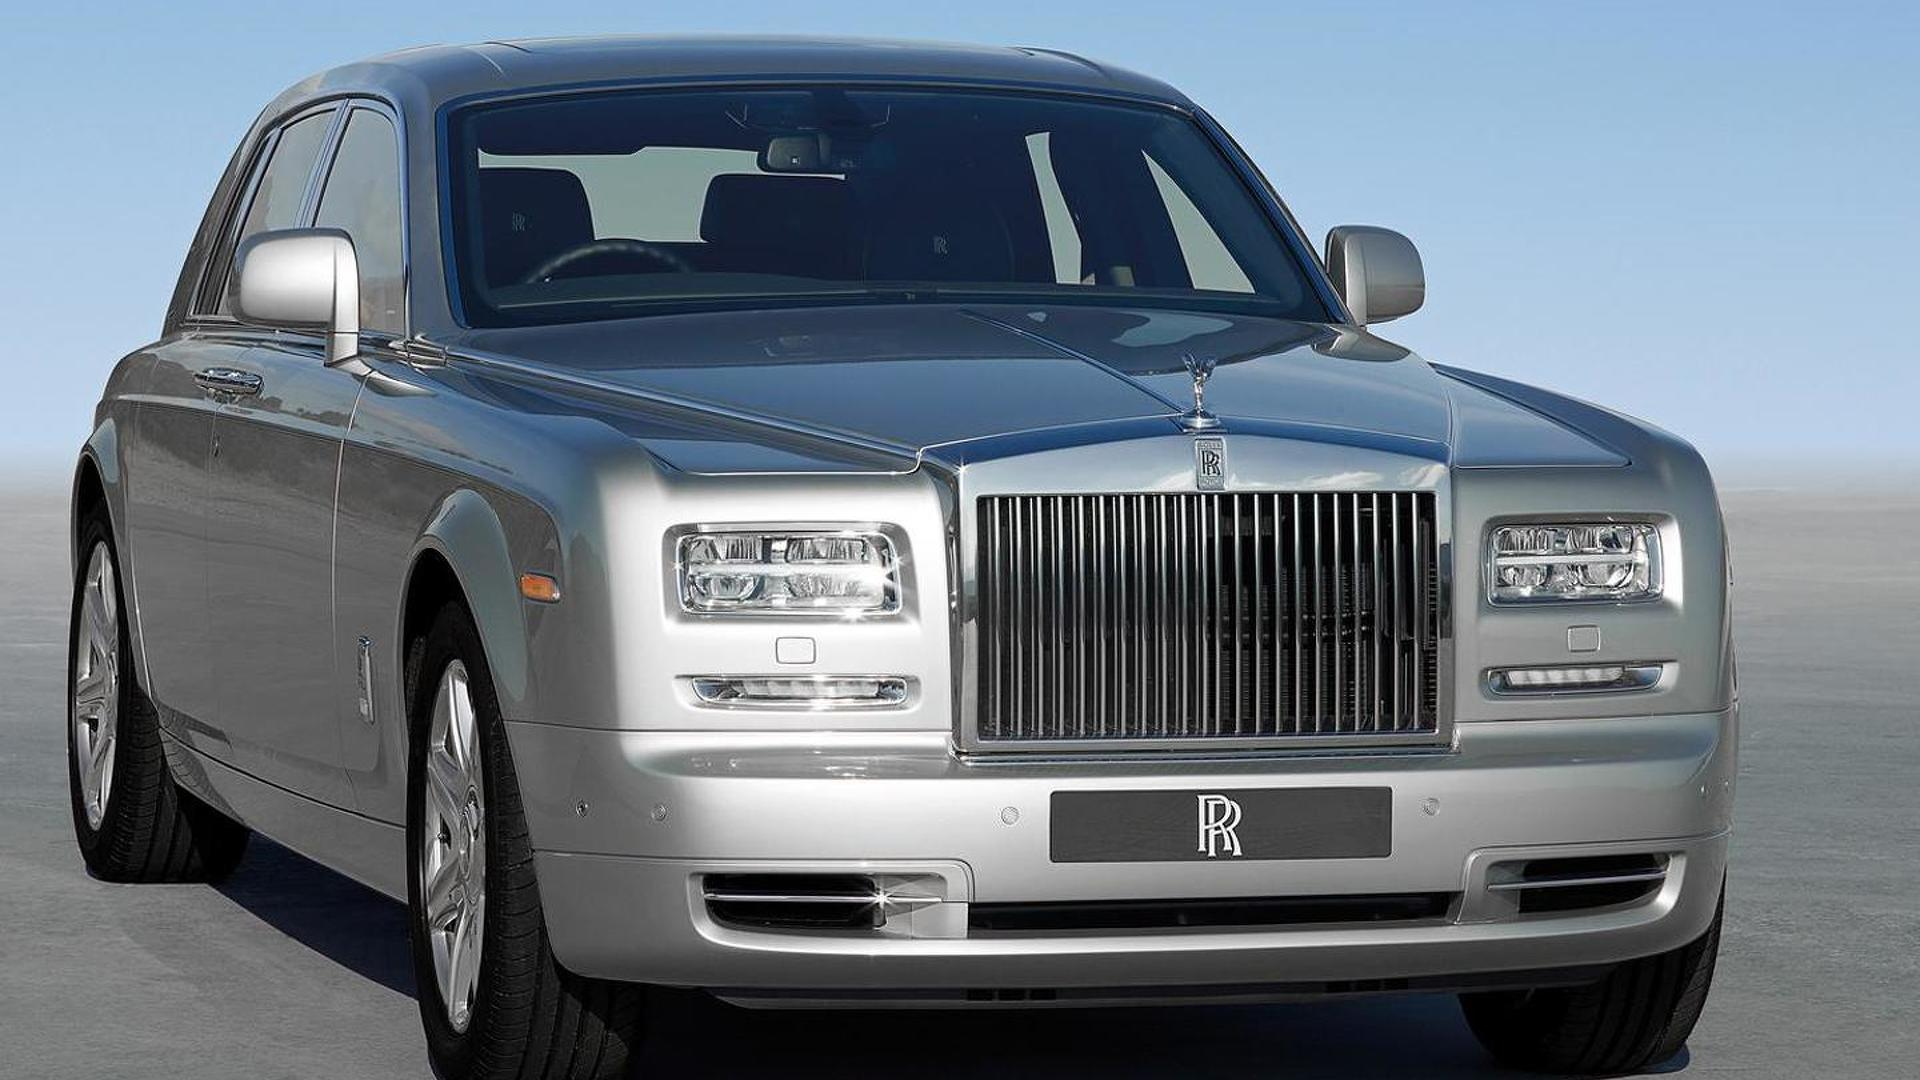 Rolls-Royce crossover under development, could be launched in 2018 - report